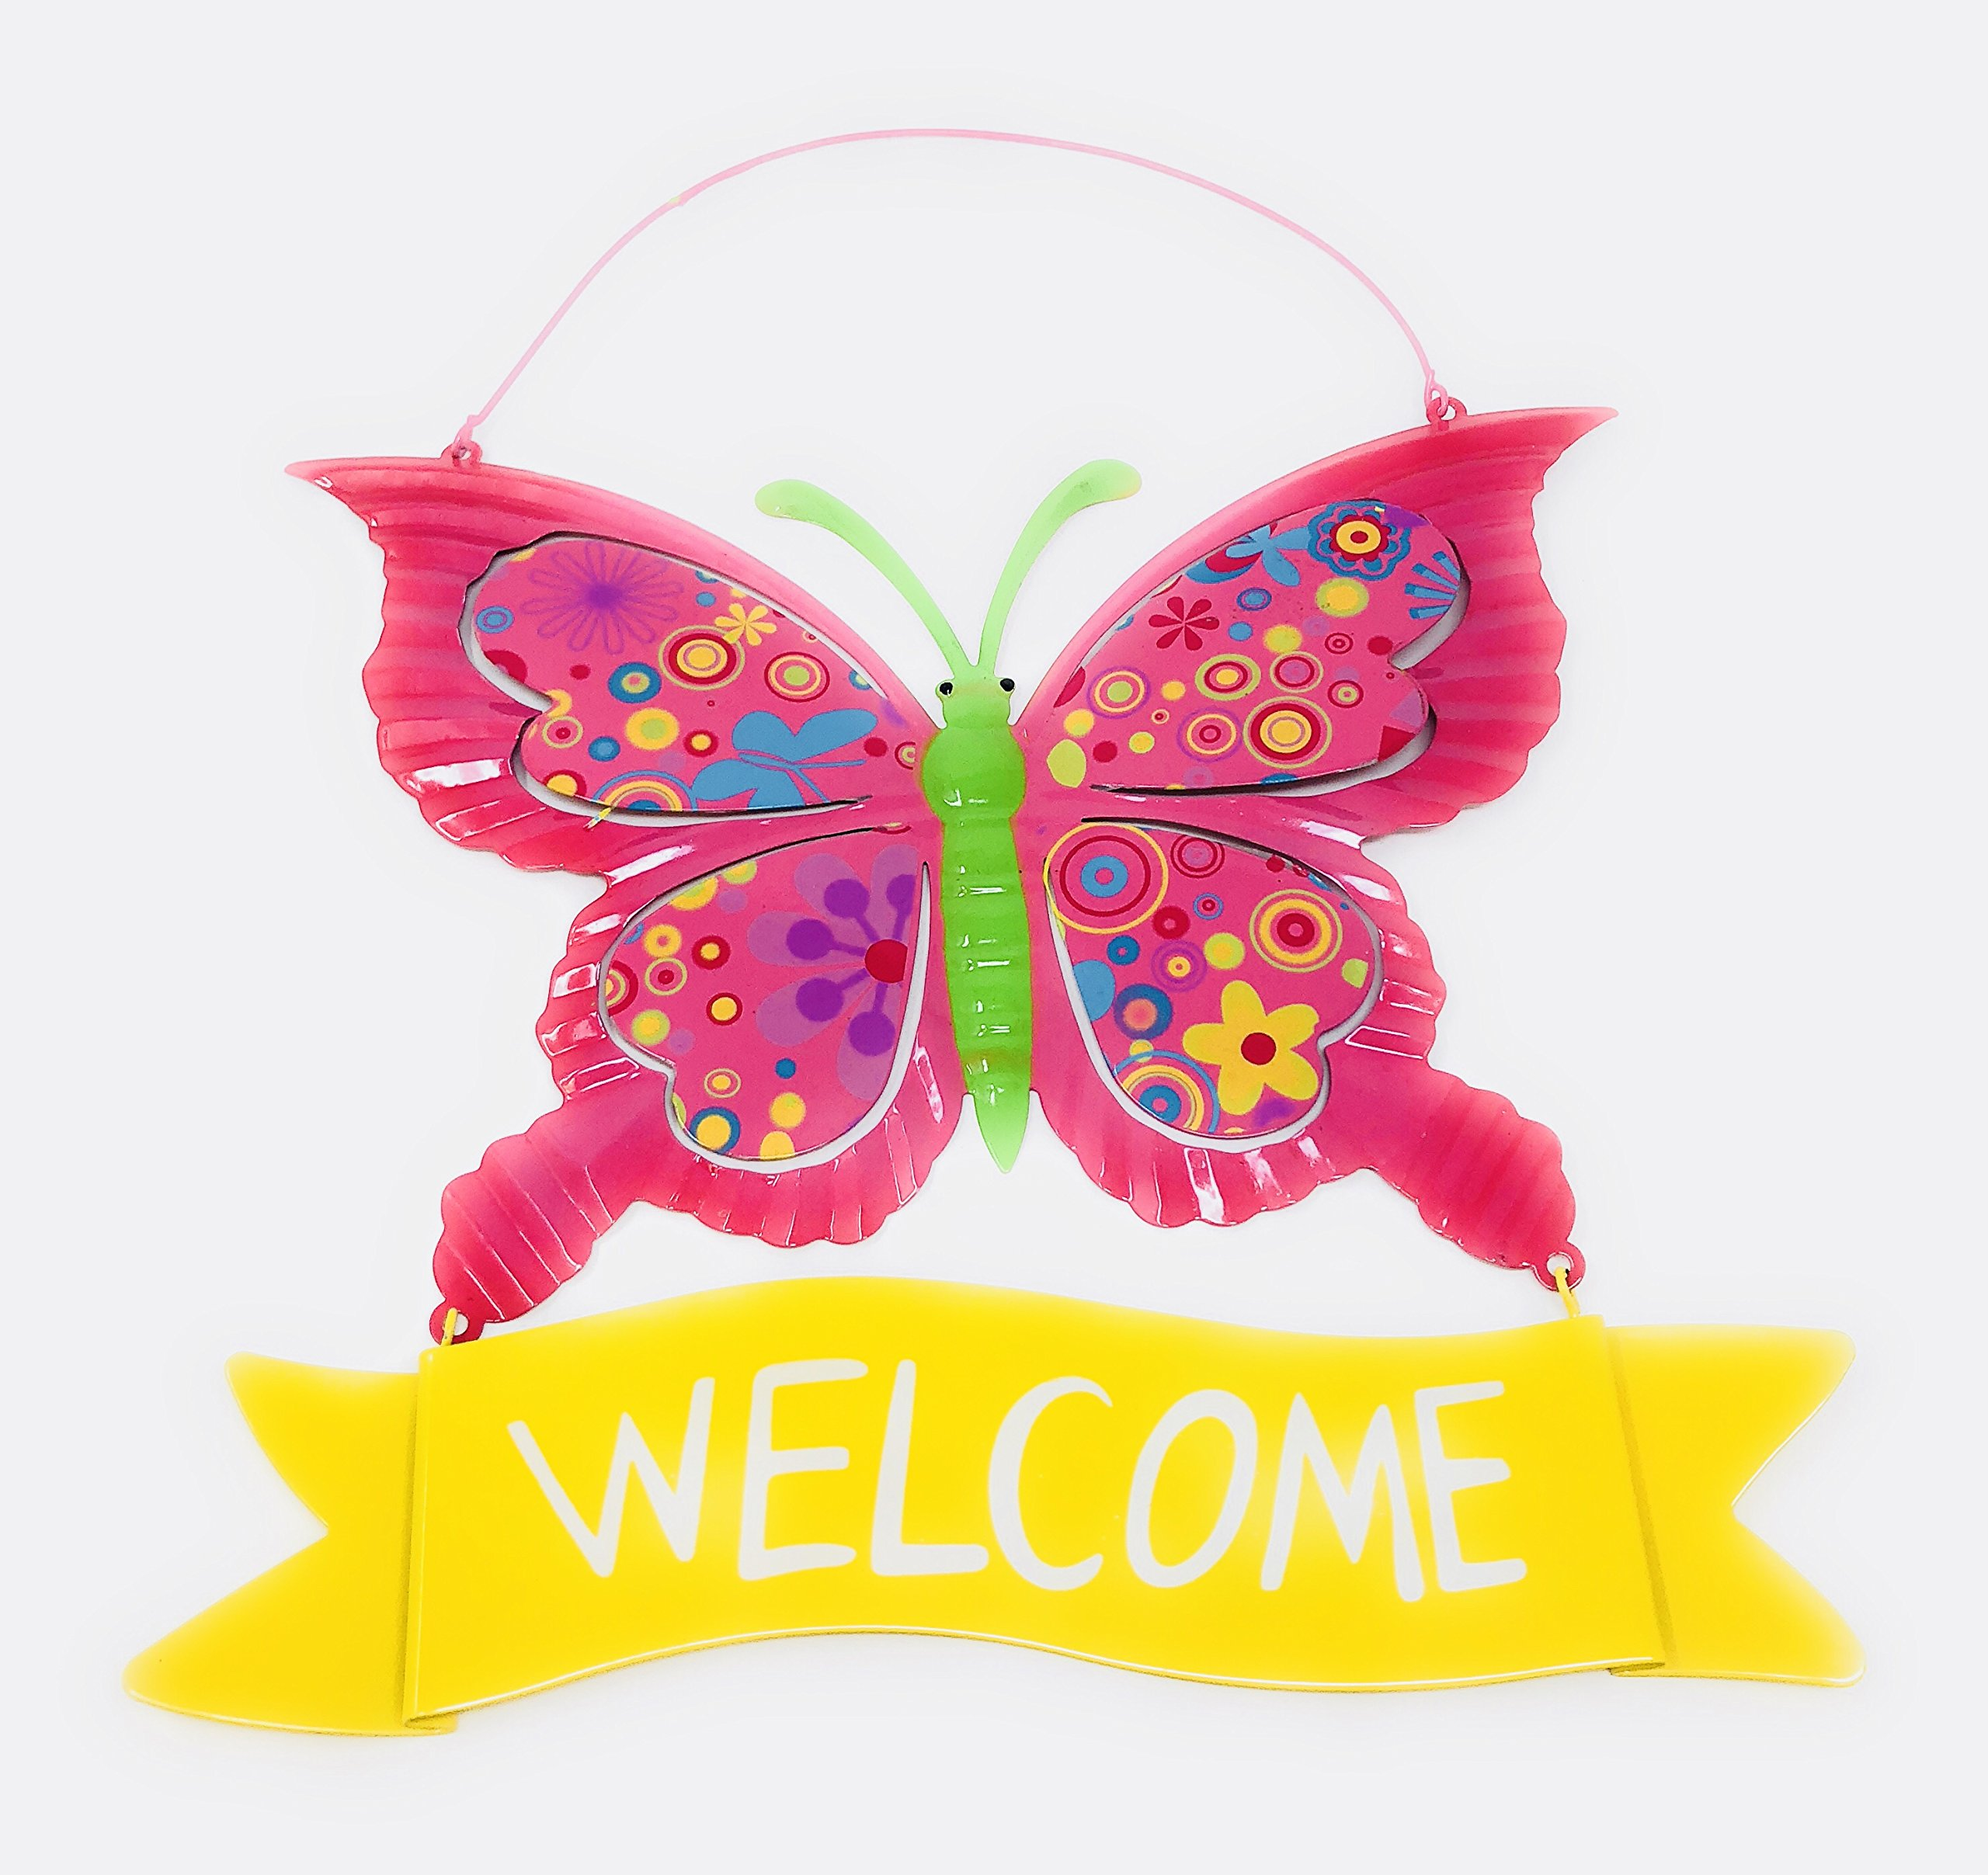 Metal Wall Art Decor Nature Inspired Flower Butterfly Sculptures For Indoor Outdoor with Welcome sign (Pink)